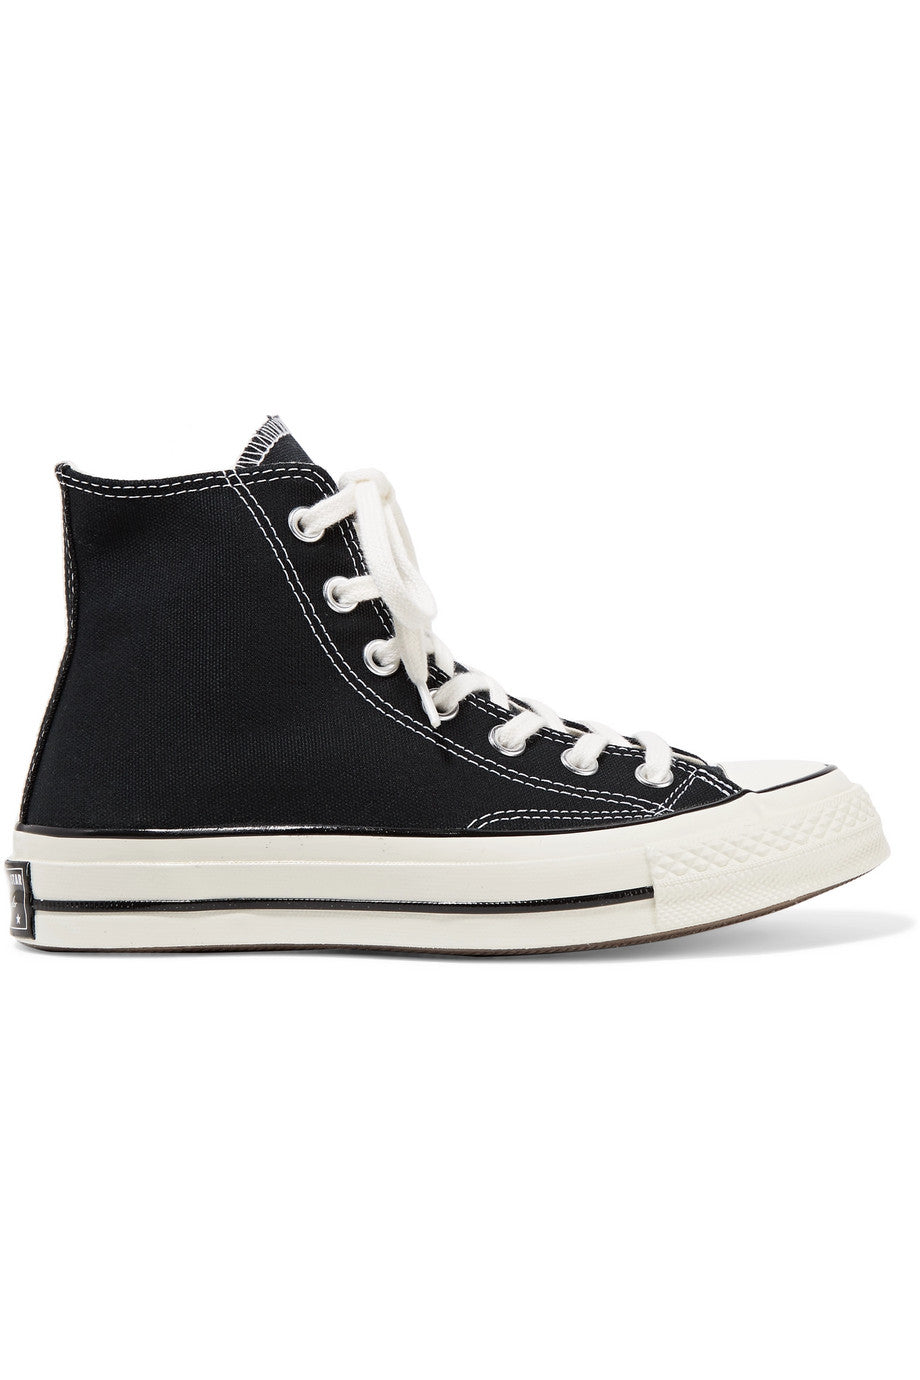 Converse Chuck Taylor All-star - Black 70 canvas high-top sneakers